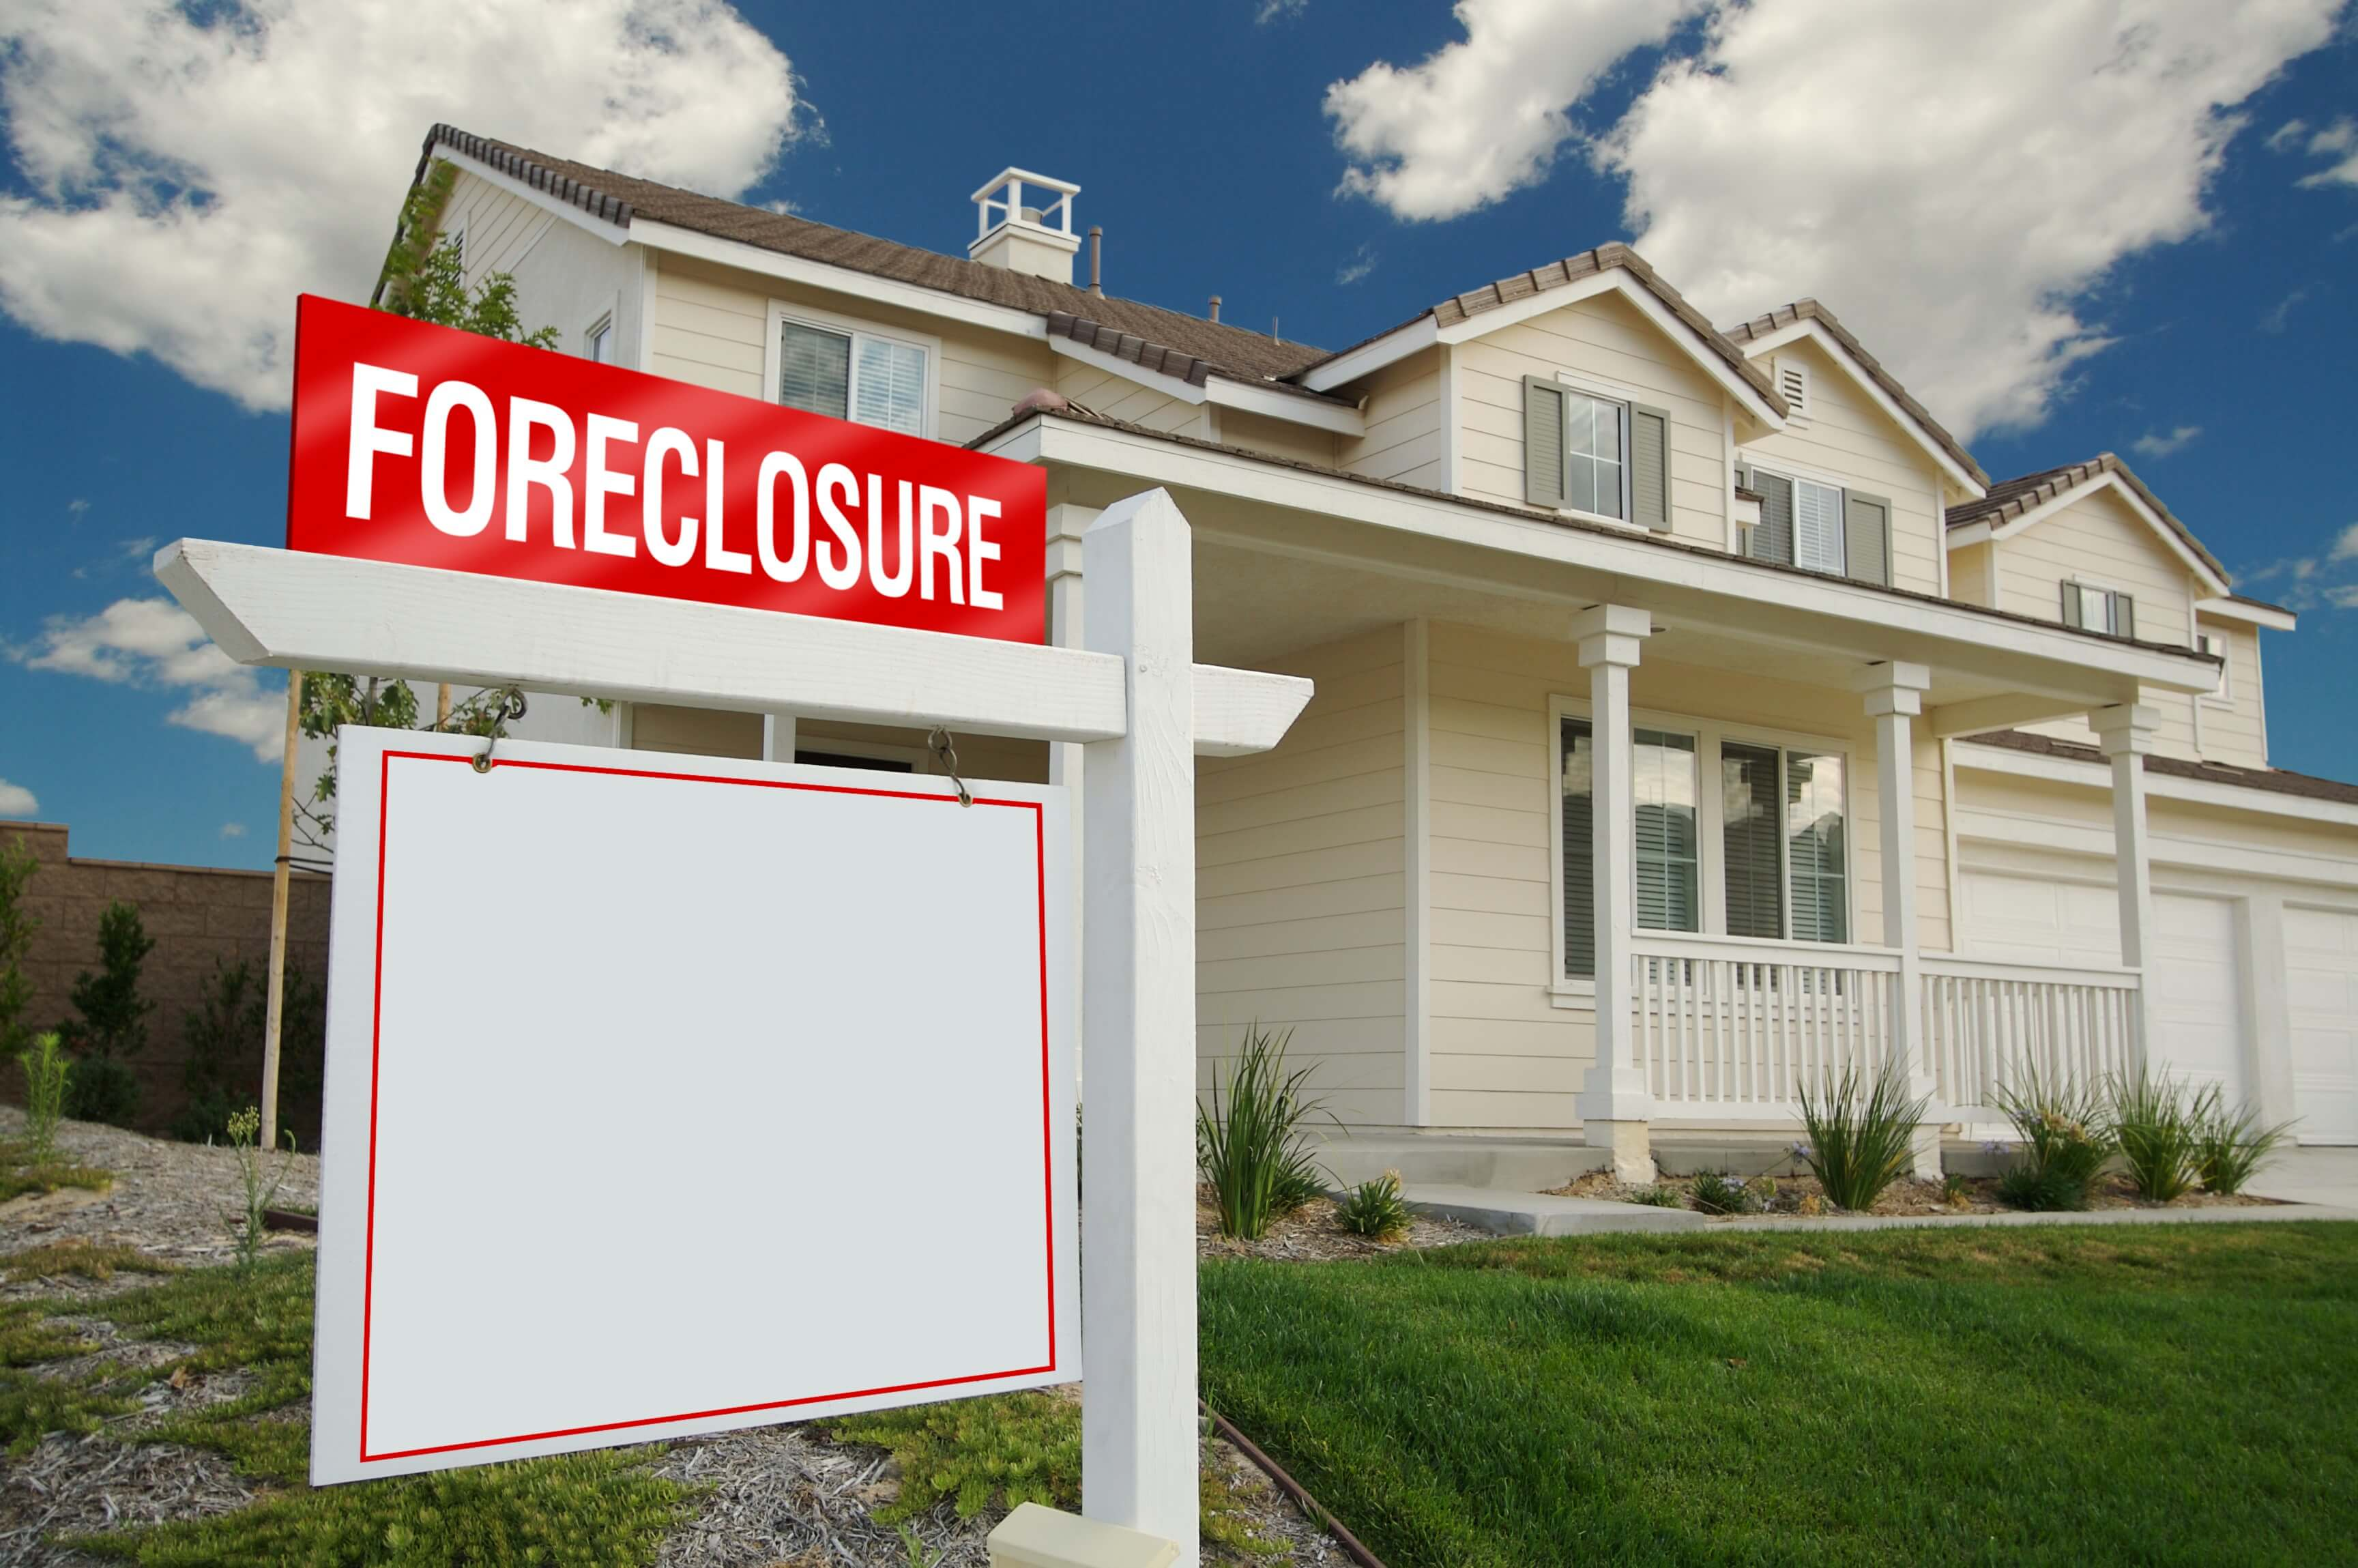 When is it Time to Use a Mortgage Loan to Avoid Foreclosure?